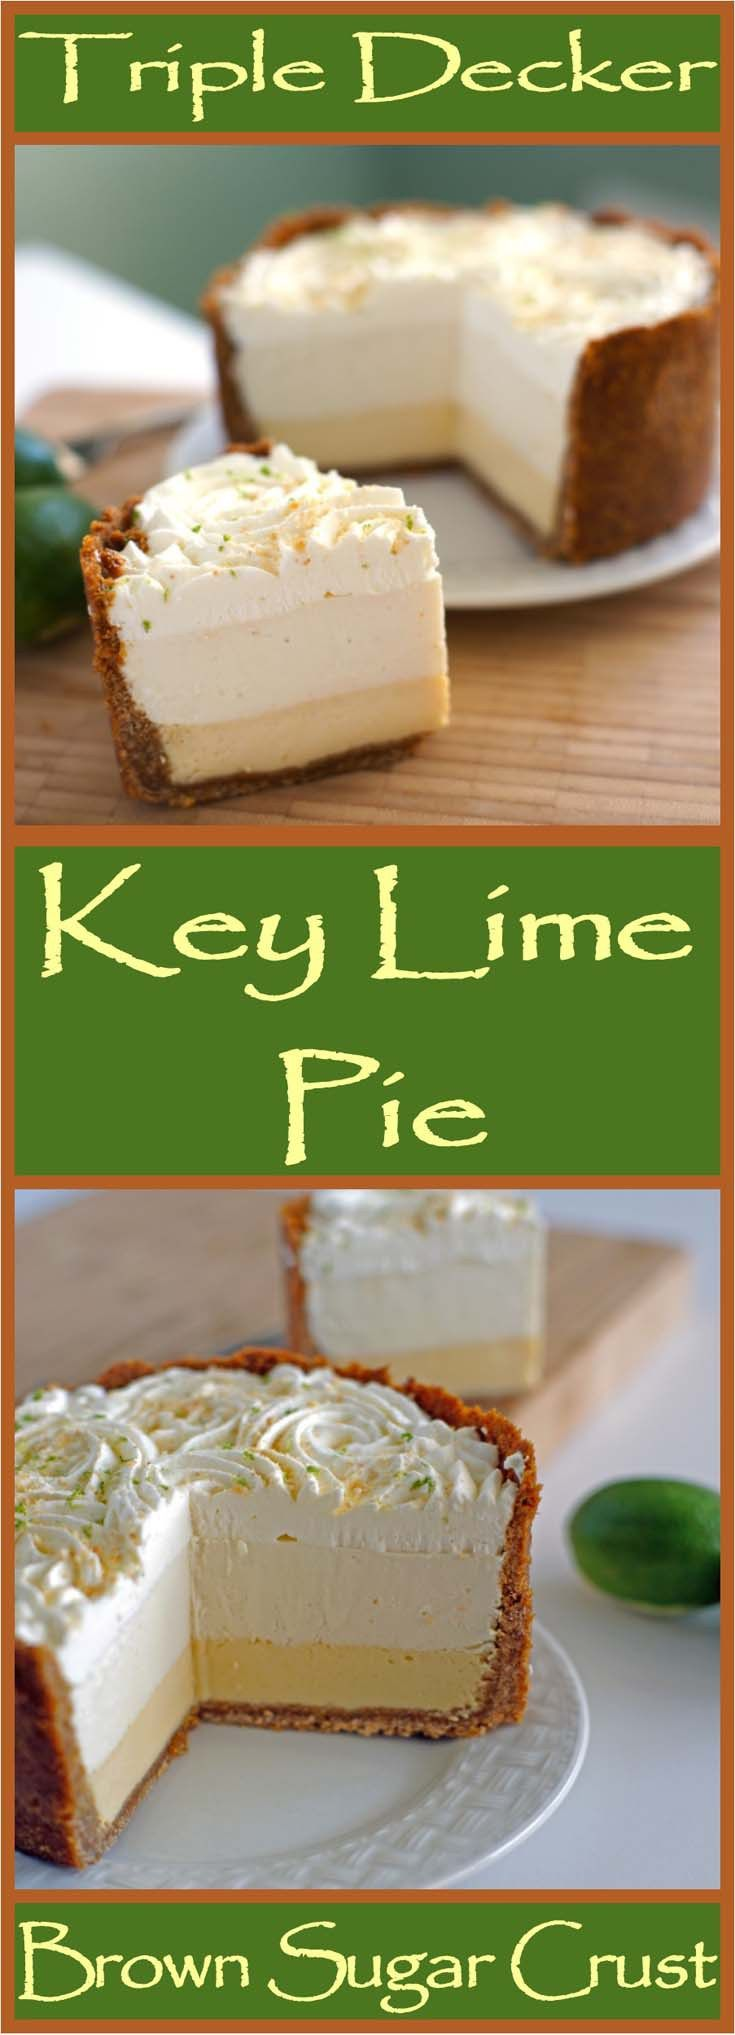 This article contains the recipe for Sweet IRB Bakery's Triple Key Lime Pie. Three layers of key lime pie fillings in a Cinnamon Graham Cracker Crust. (Key Lime Pie Recipes)